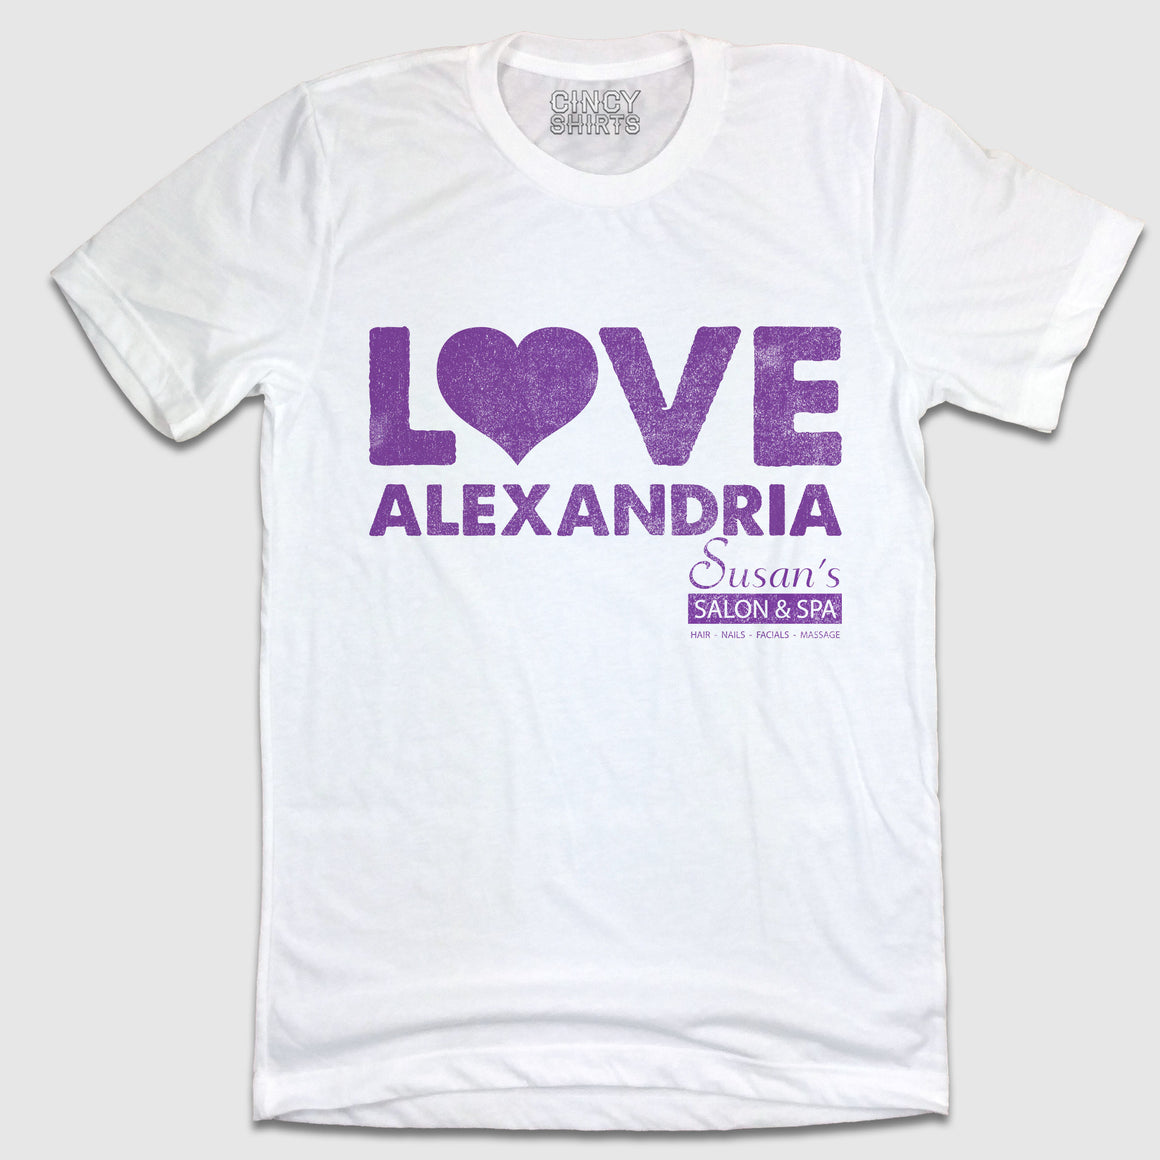 Love Alexandria - Susan Salon & Spa - Cincy Shirts